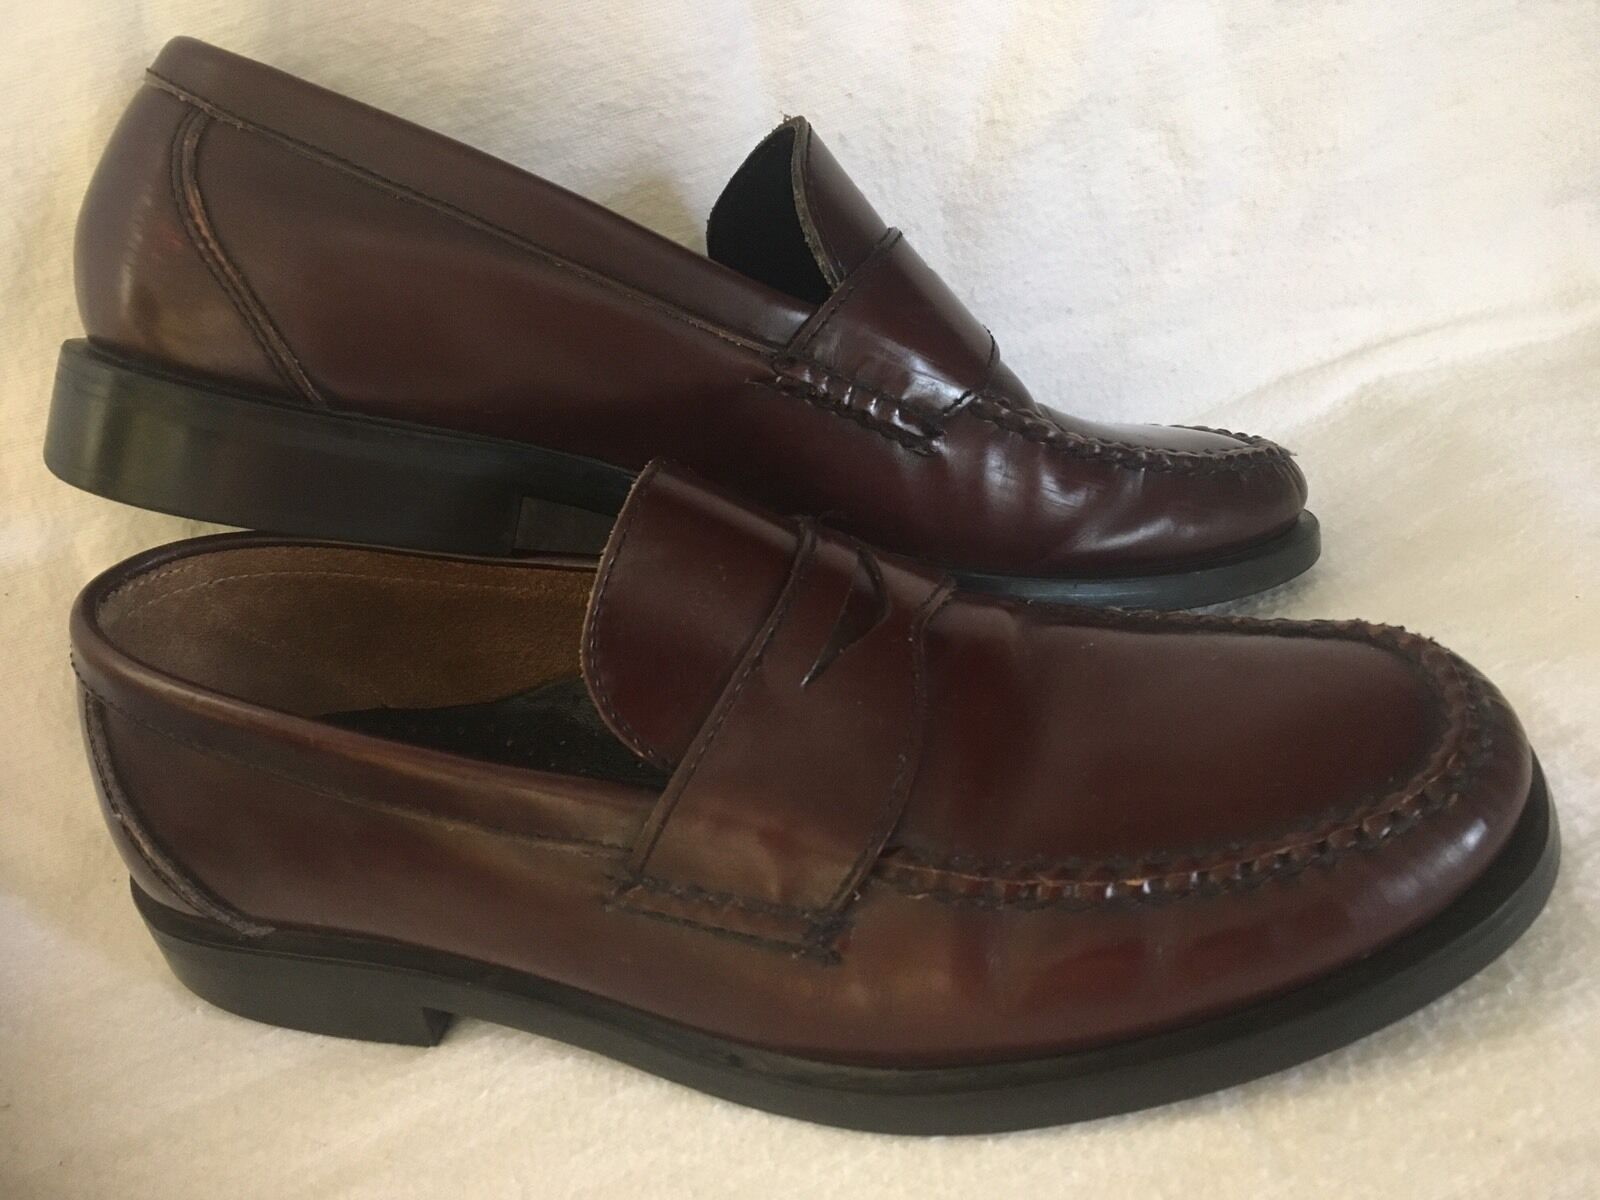 Bass Zevon Penny US Loafer Mens US Penny 9 D Brown Leather Slip On Shoes aa7760